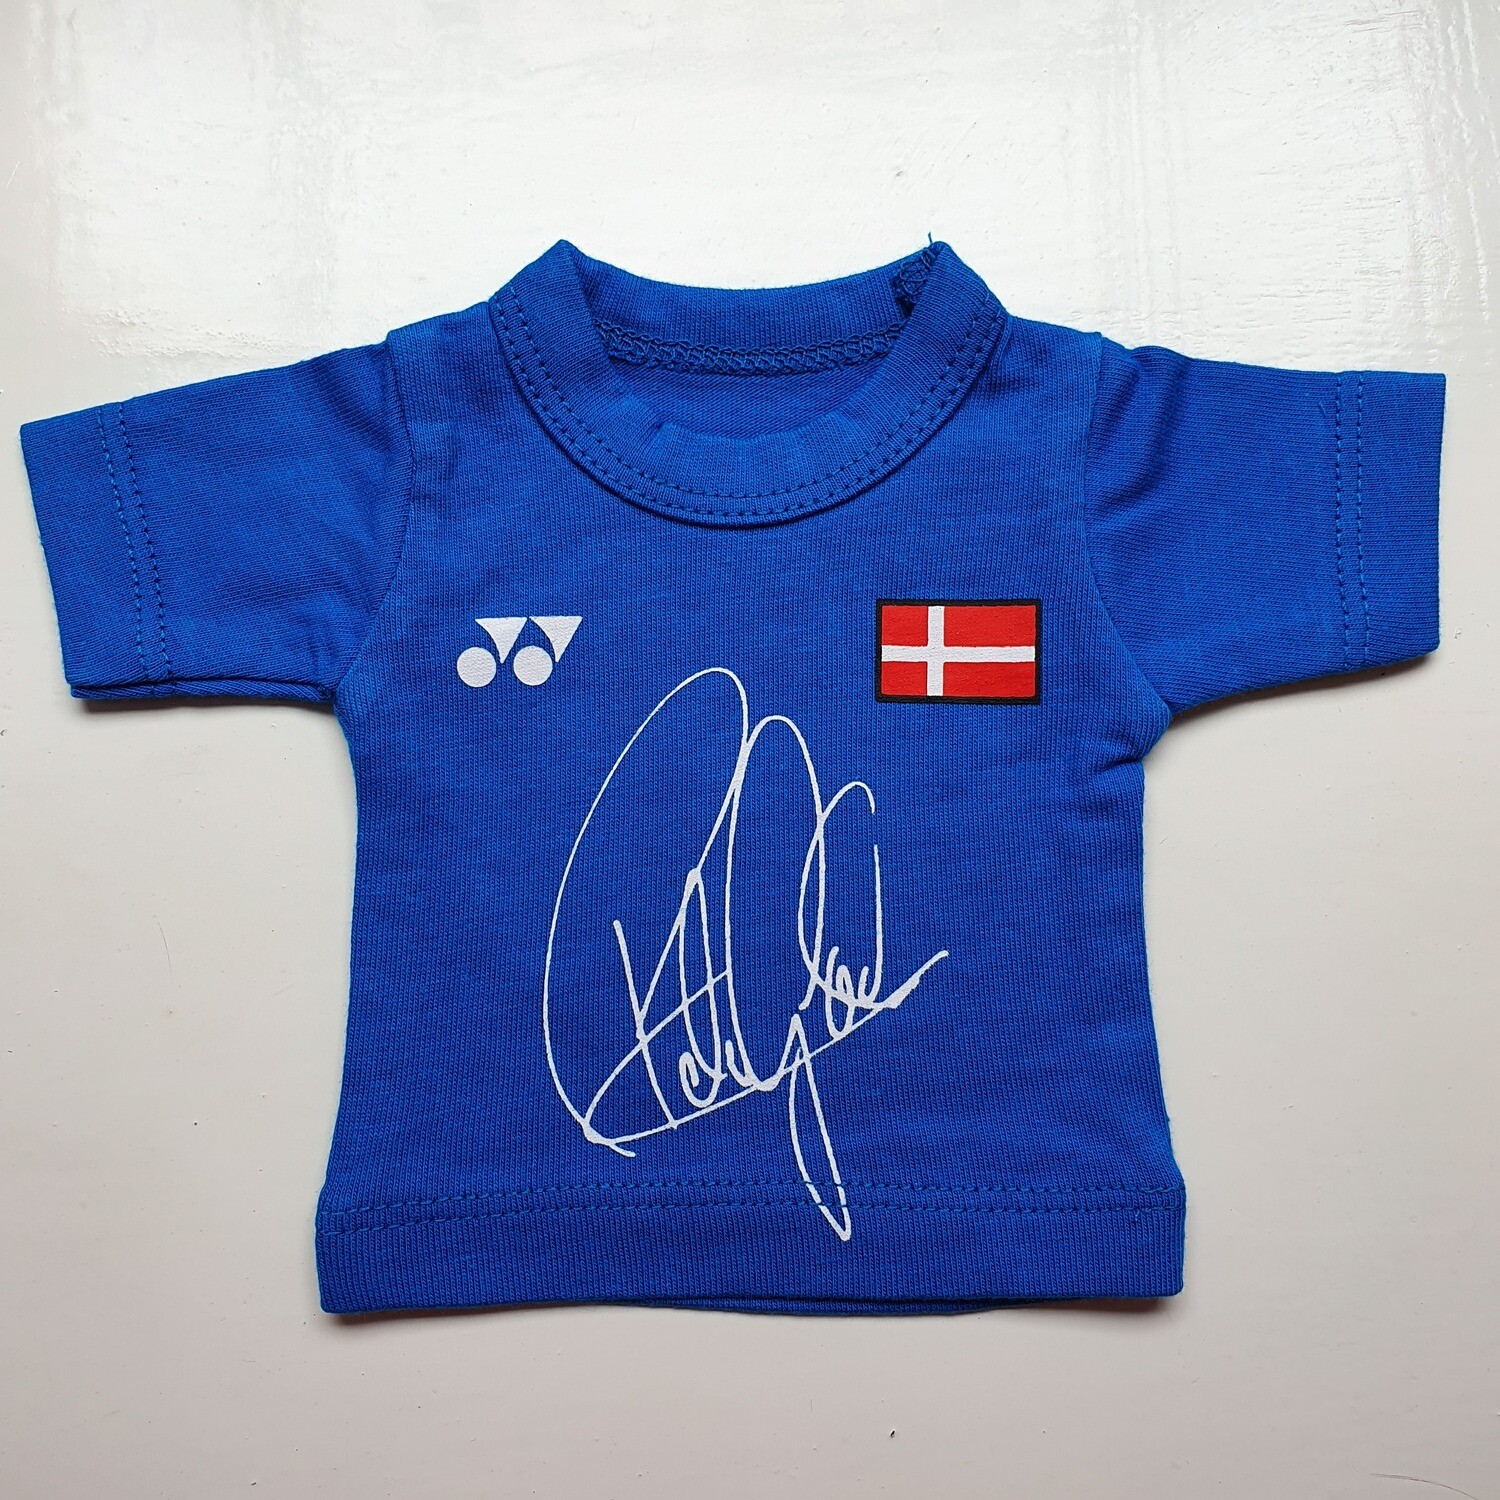 Yonex Legends Mini Shirt - Peter Gade